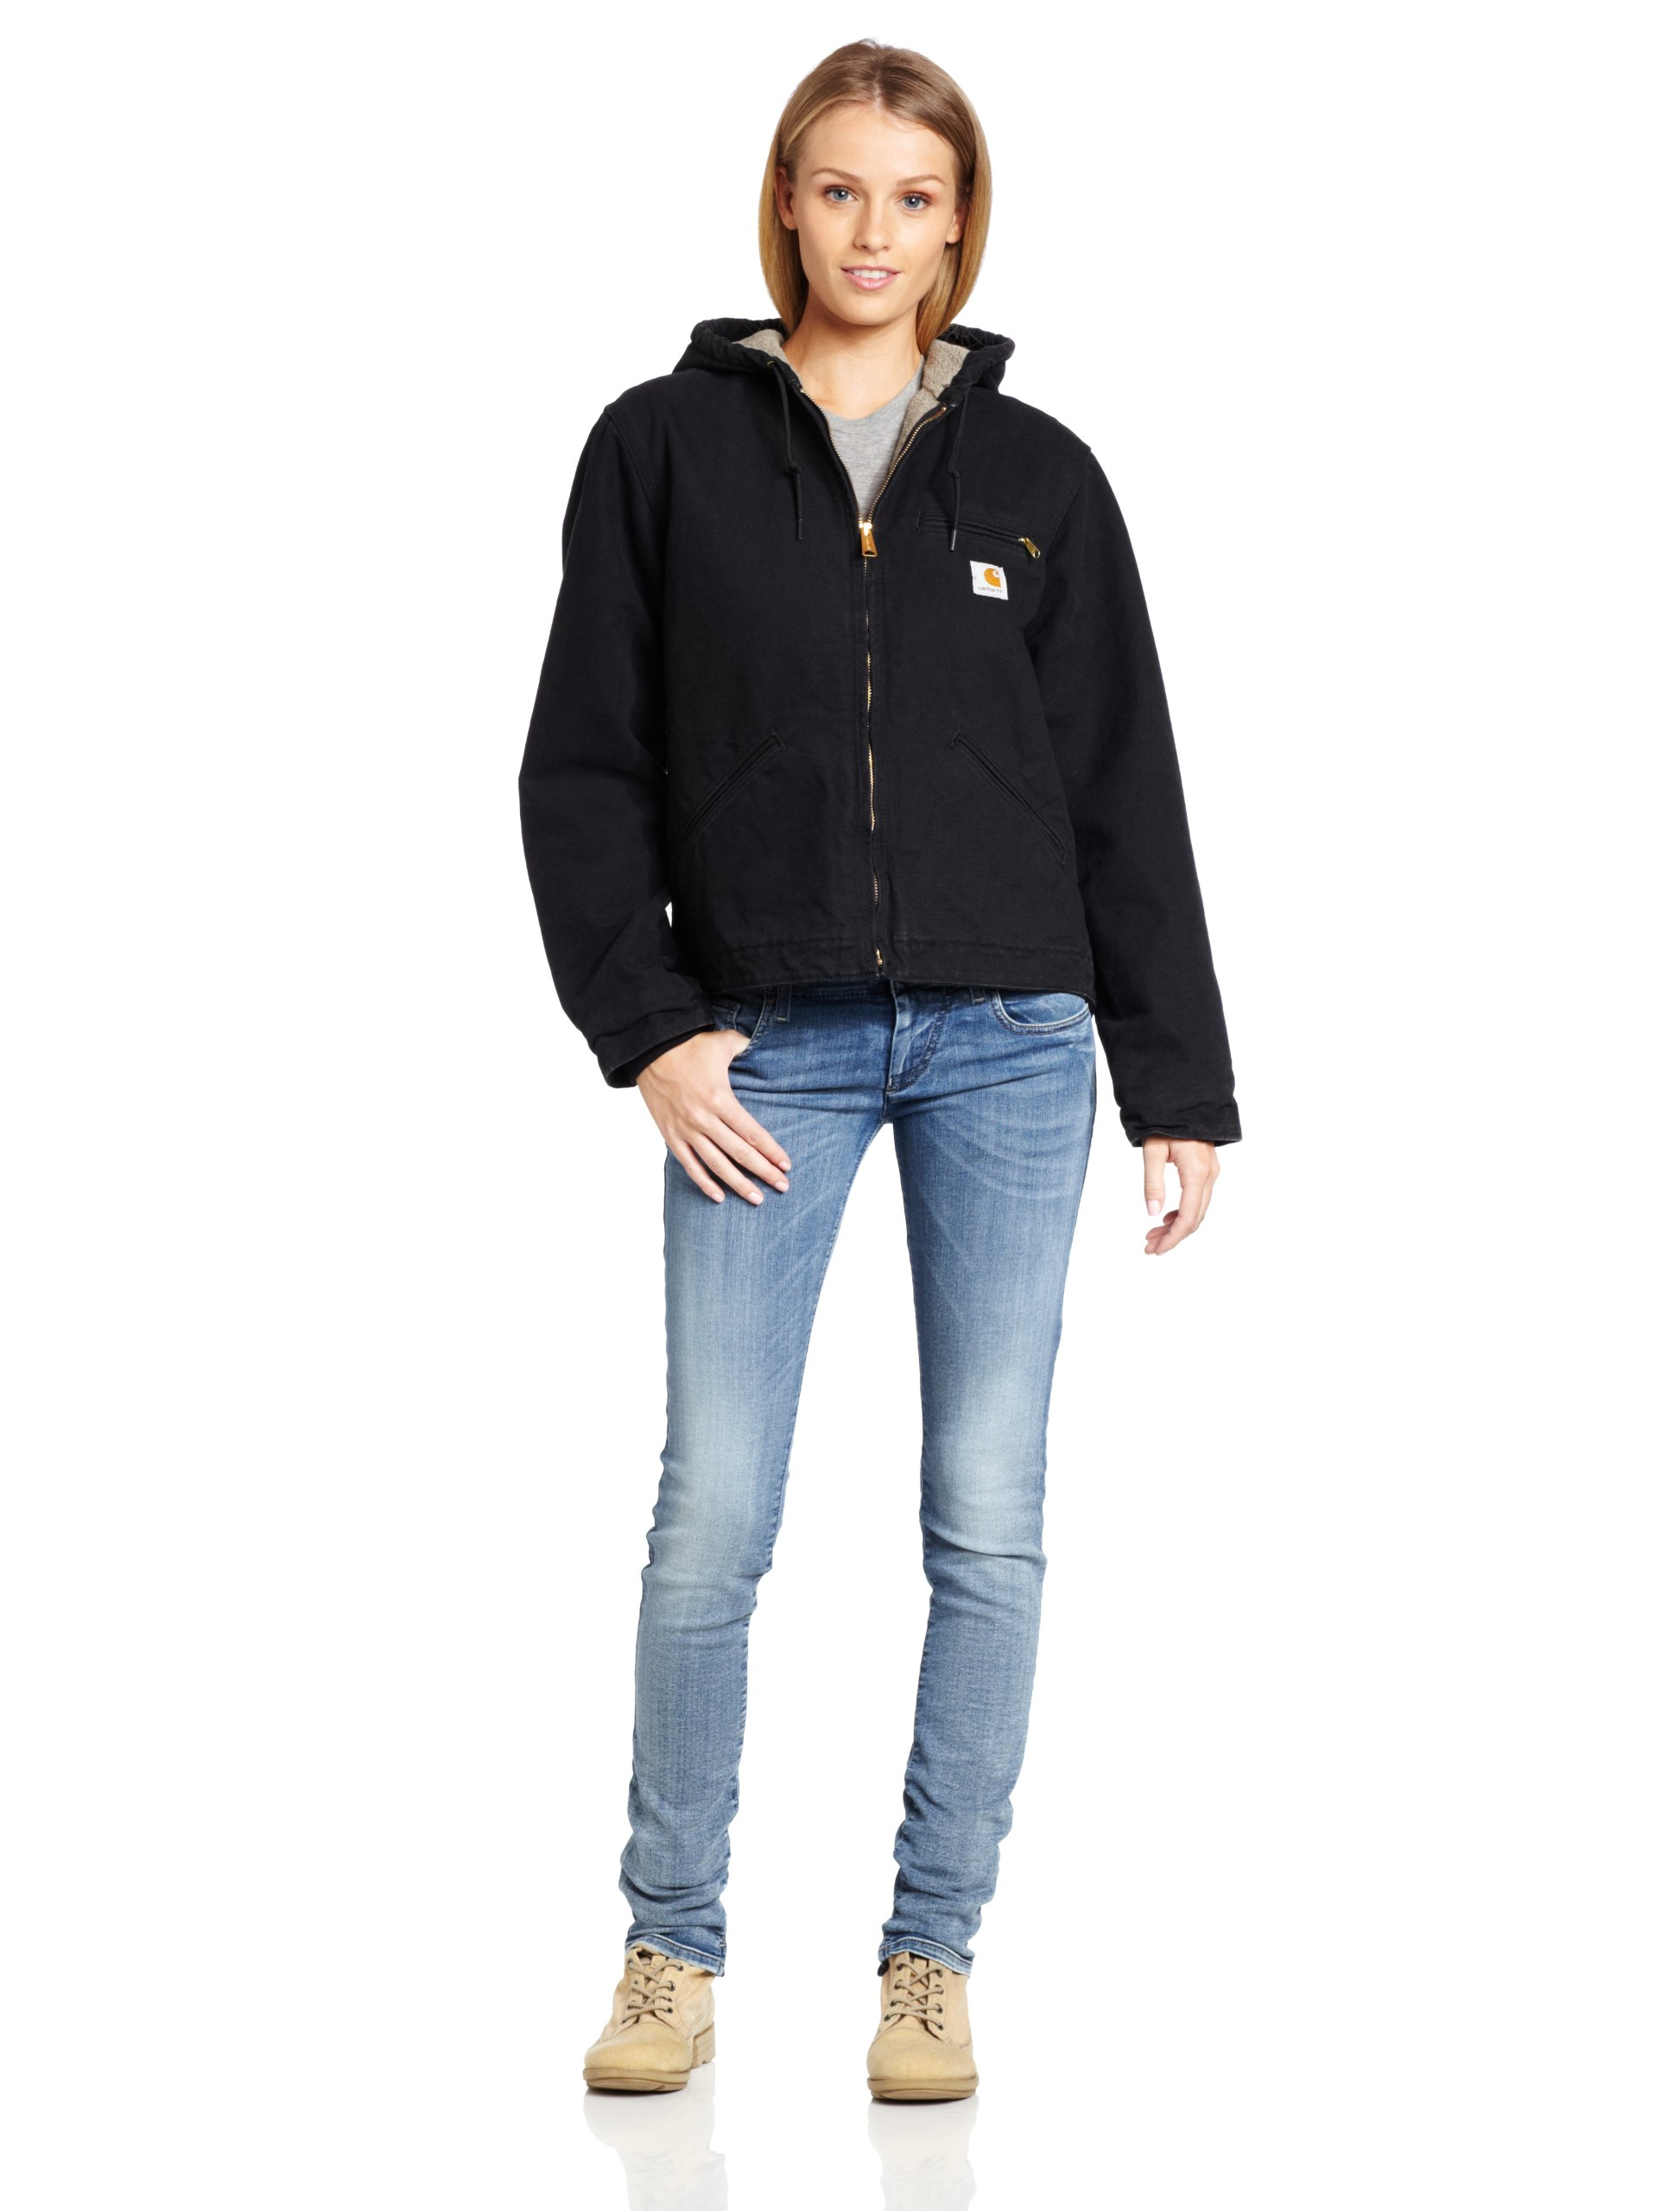 Carhartt Women's Sherpa Lined Sandstone Sierra Jacket Zip Front Hooded WJ141,Black,Large